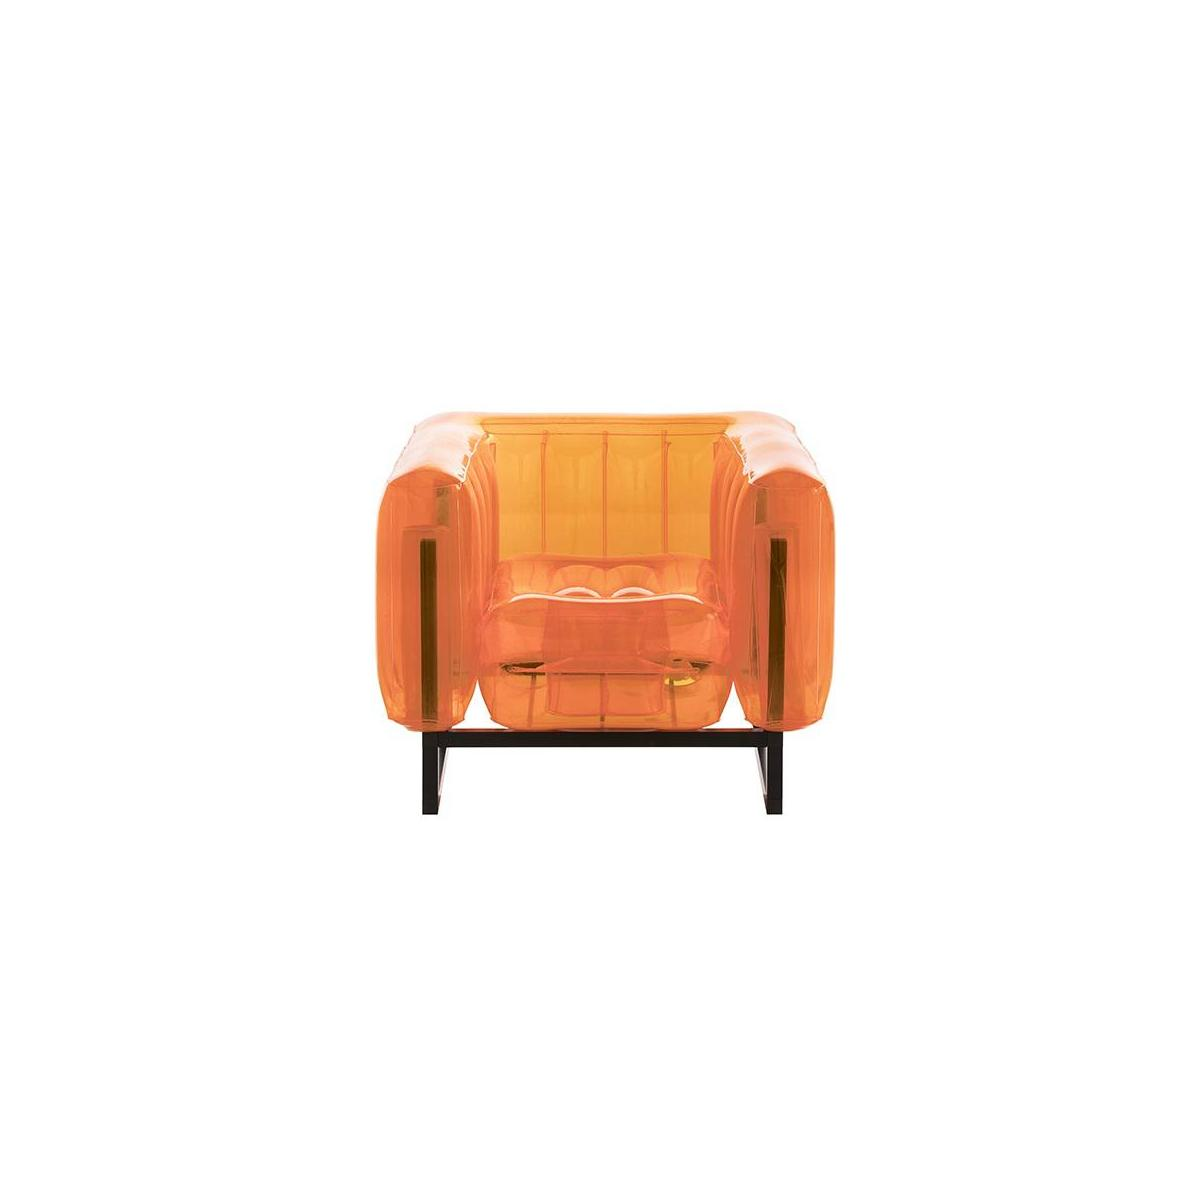 Fauteuil gonflable en PVC - Orange n°3